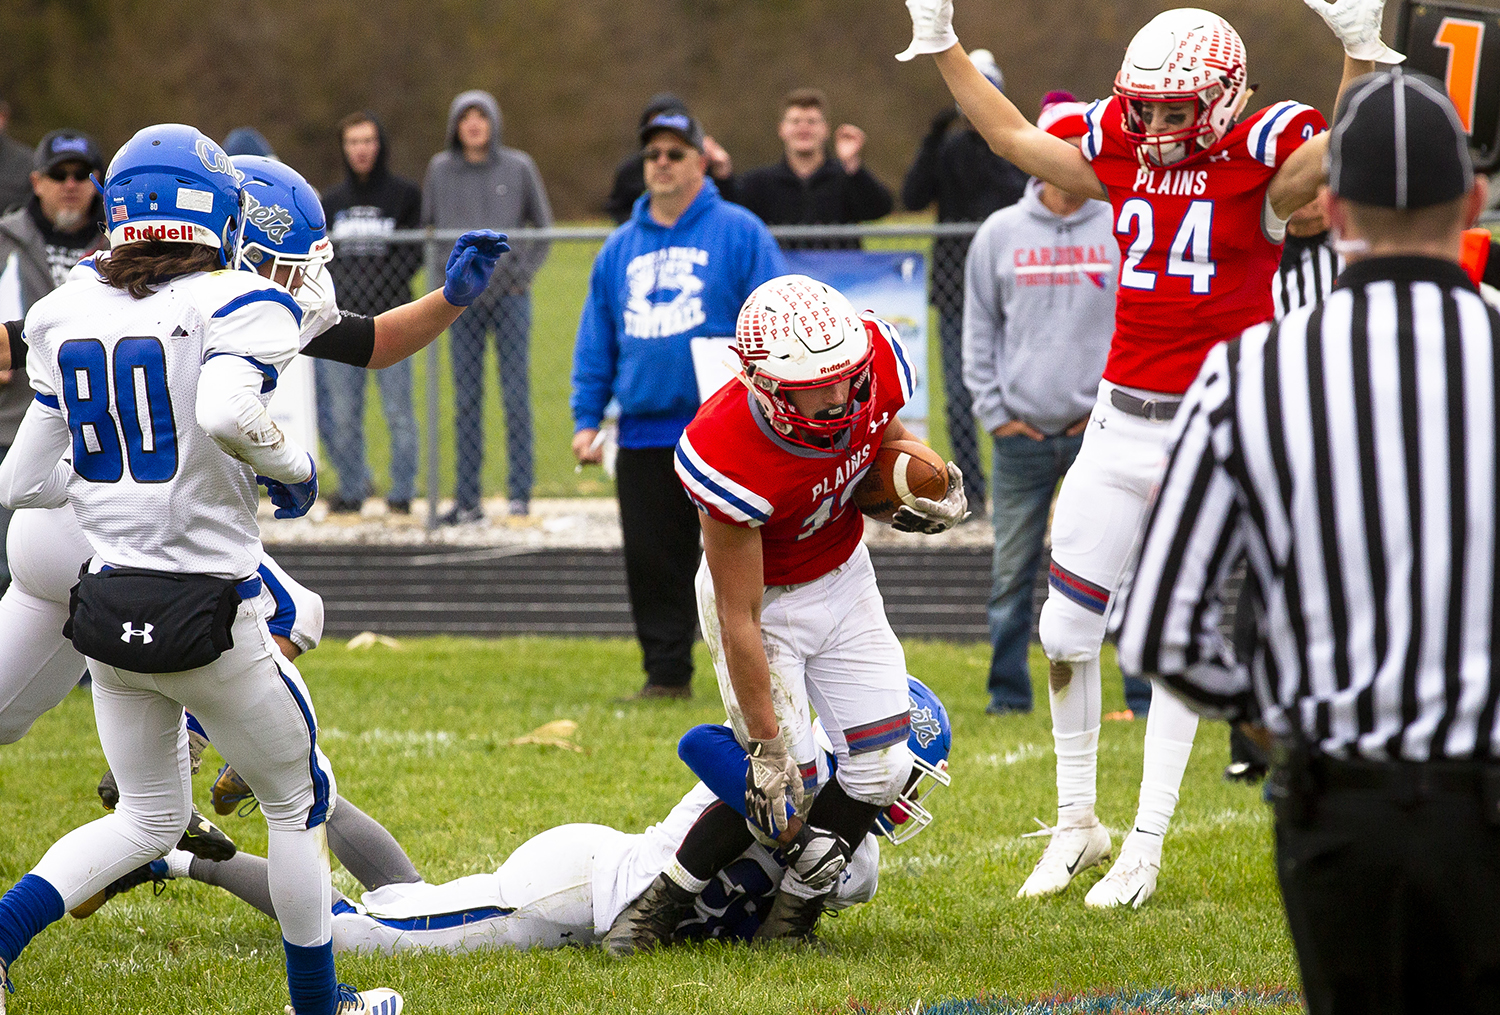 Pleasant Plains' Lucas Western steps into the end zone to score after recovering a Greenville fumble, giving the Cardinals' a 6-0 lead in the second quarter of the Class 2A playoff game Saturday, Nov. 3, 2018 at Pleasant Plains High School in Pleasant Plains, Ill. [Rich Saal/The State Journal-Register]